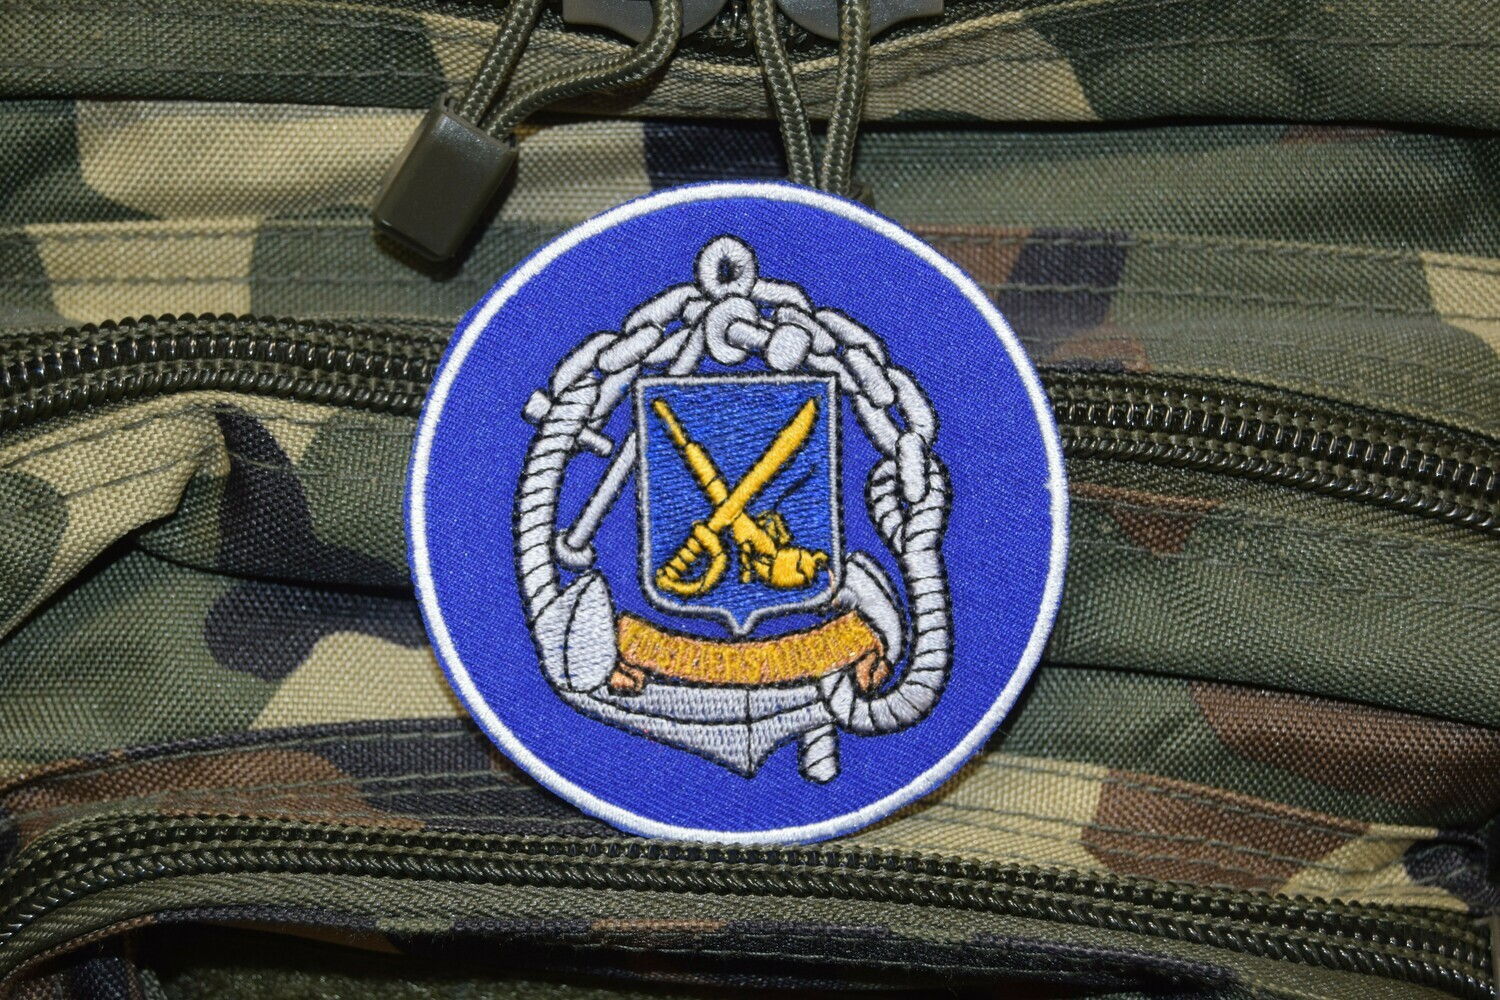 Patch militaire Fusiliers Marins